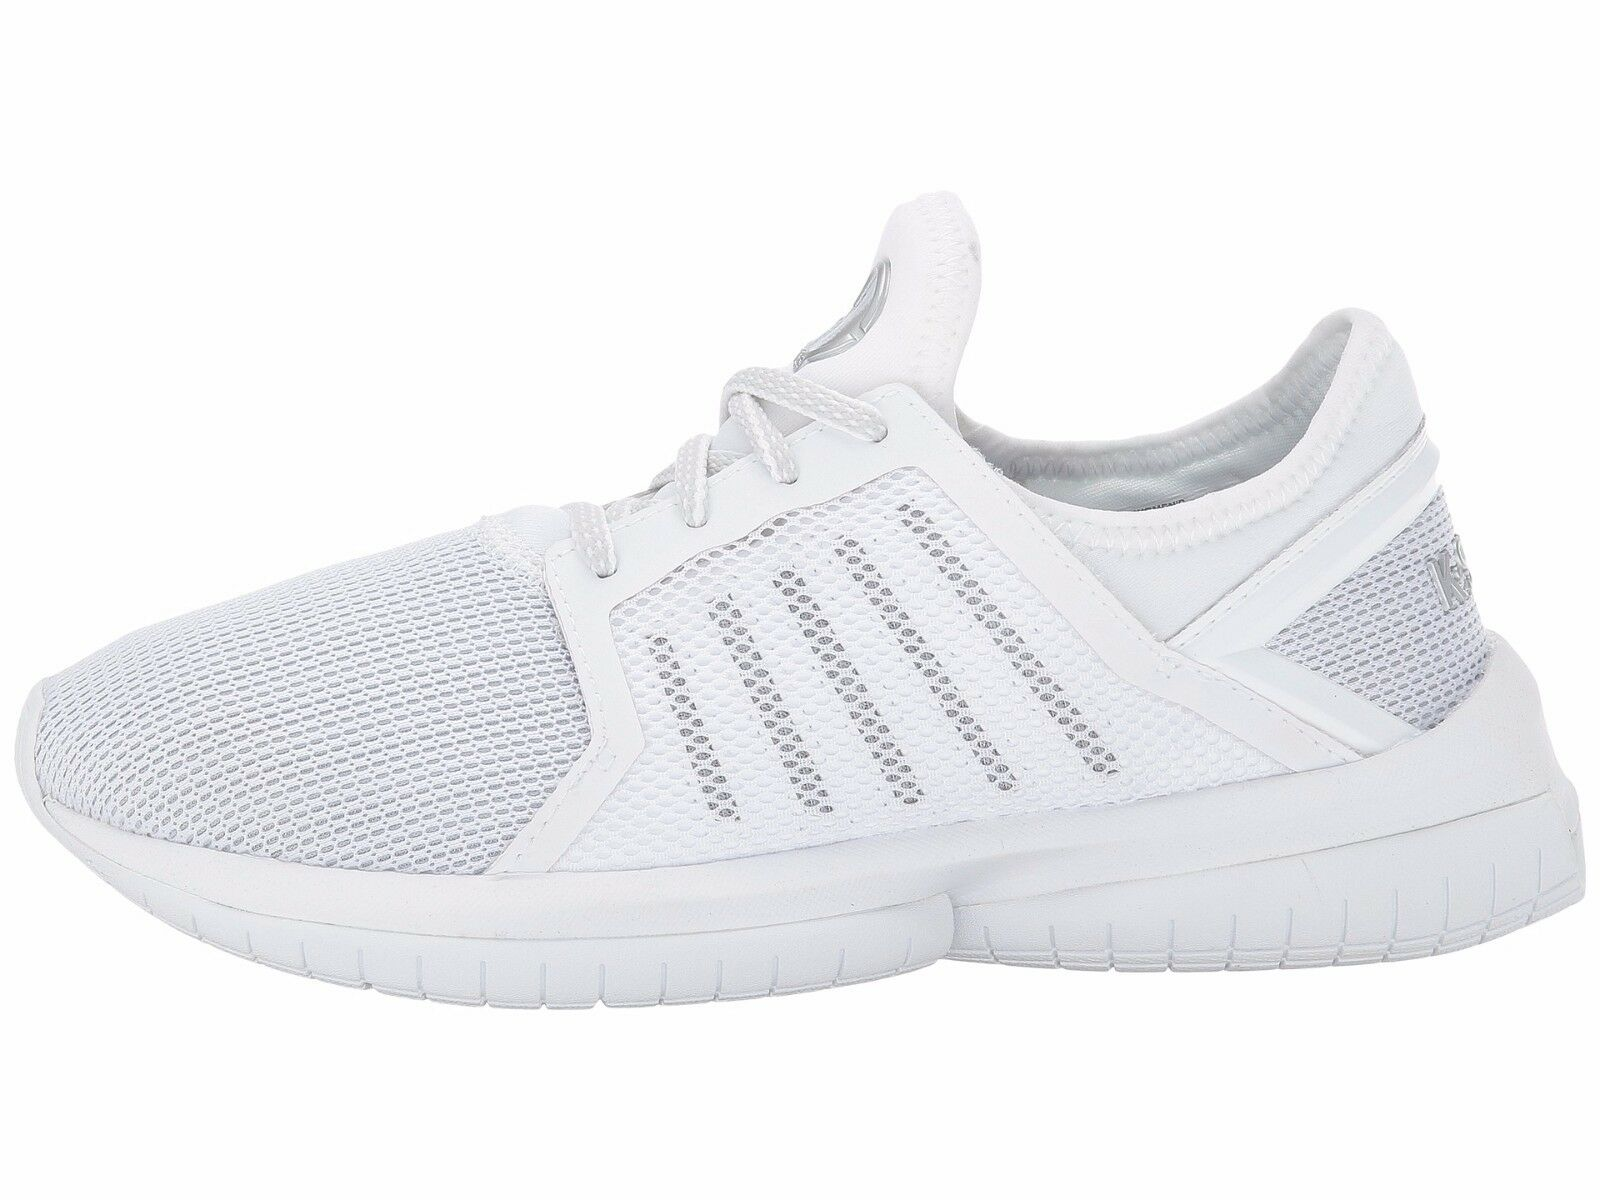 K-Swiss Tubes Millennia White Blue Women's Athletic Sneaker 95483-538